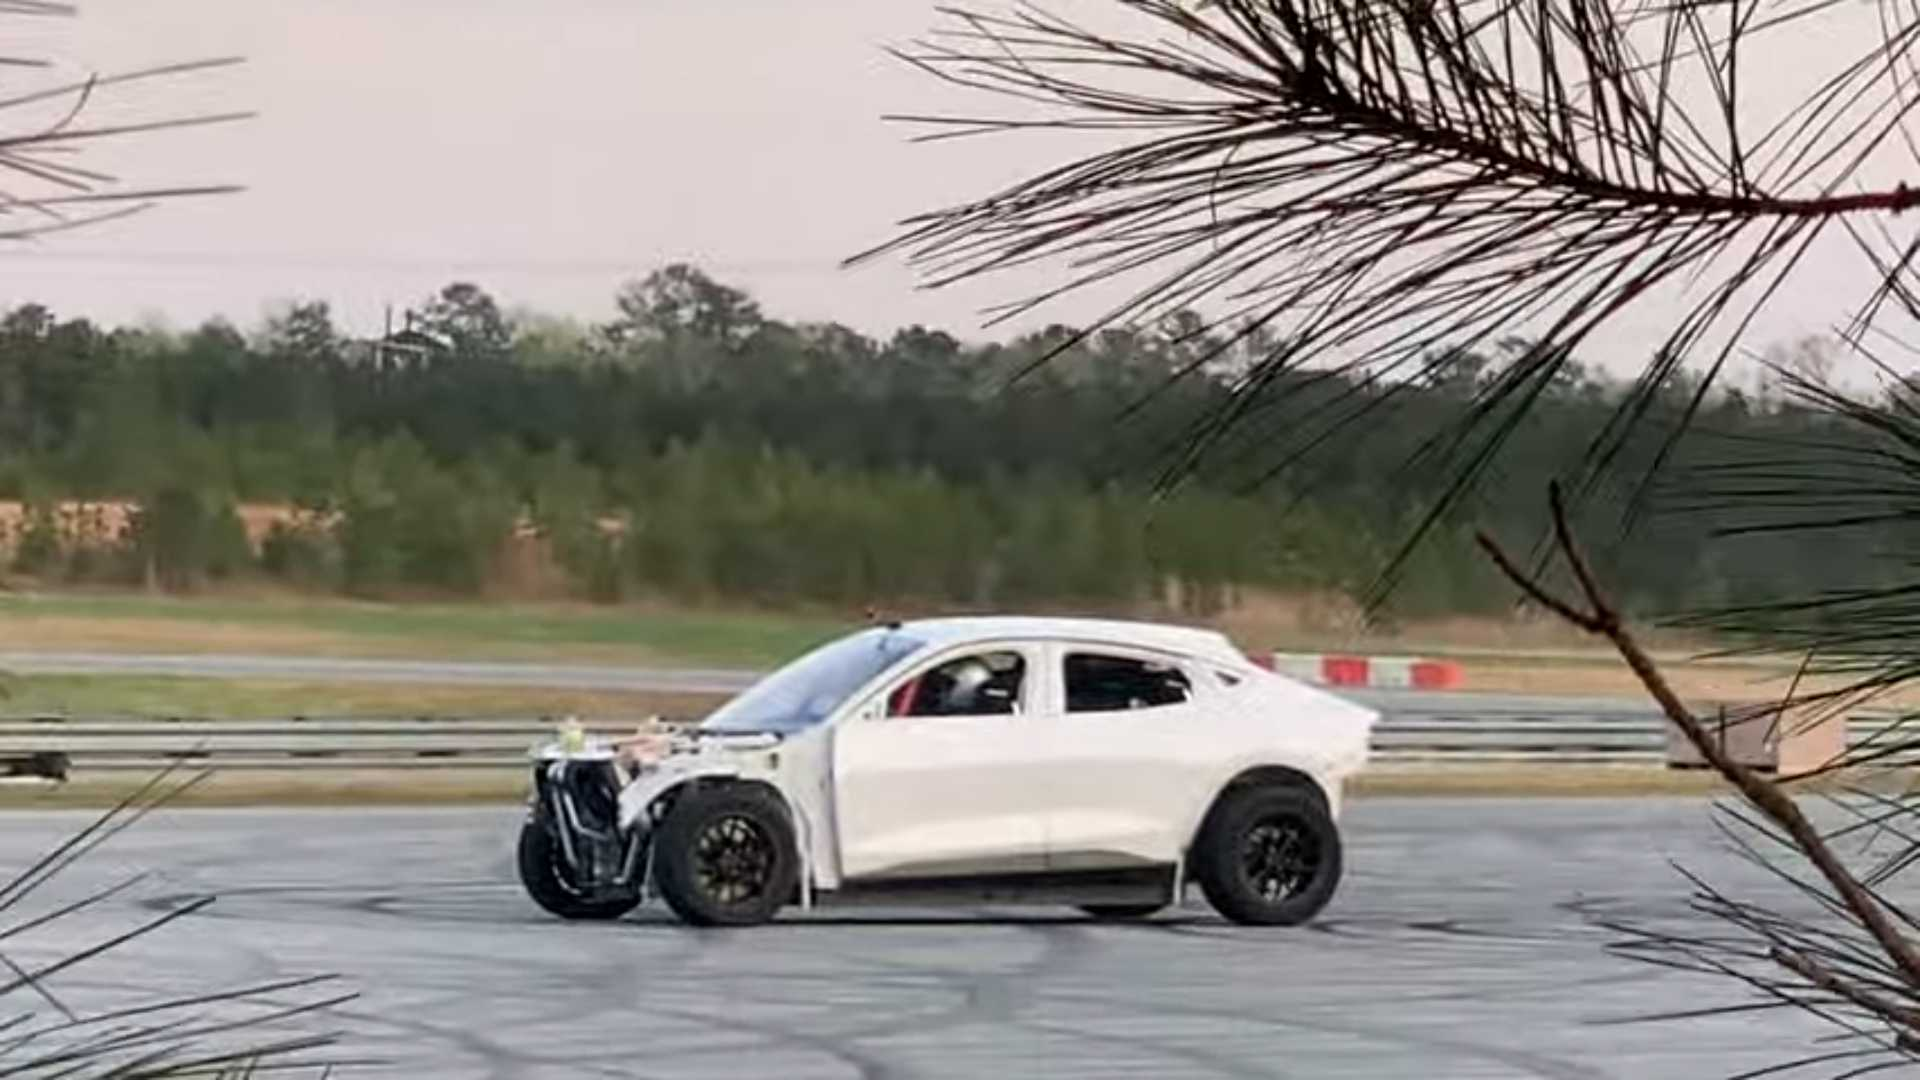 What Is Ford Executing In The Woods With This Outrageous Mustang Mach-E?